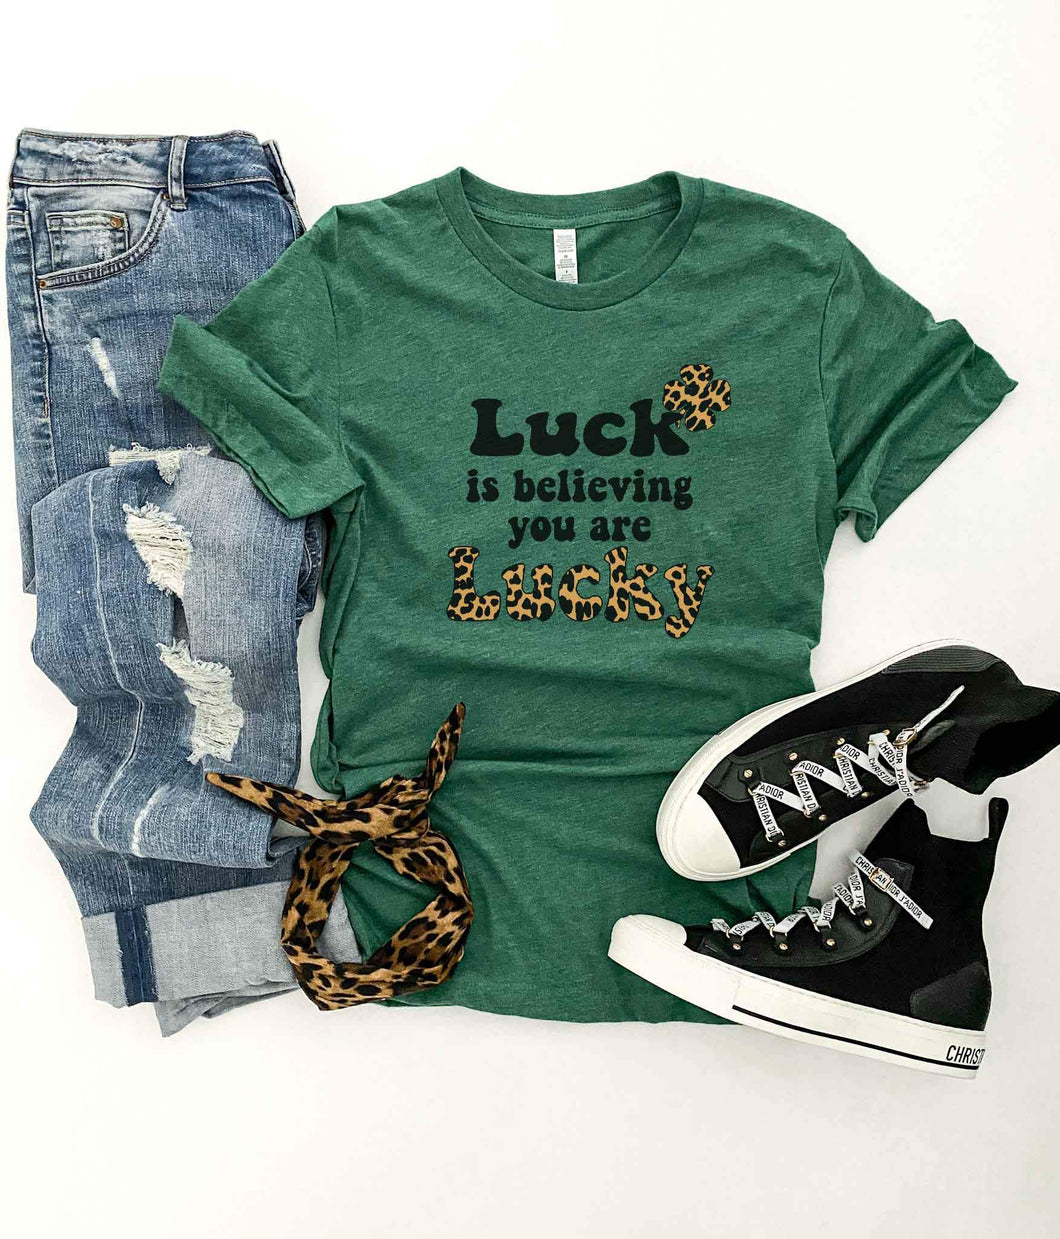 Luck is believing you are lucky tee Short sleeve holiday tee Bella Canvas 3001 grass green